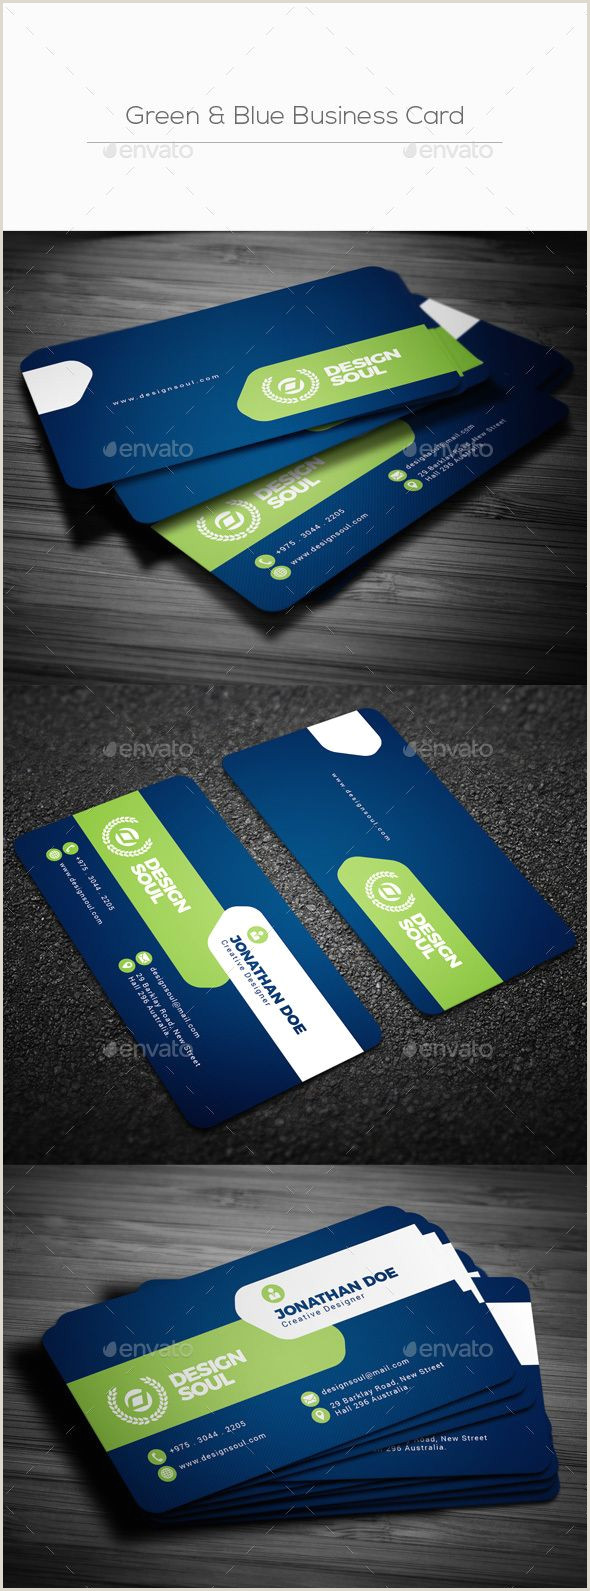 Professional Bussiness Cards Green & Blue Business Card Corporate Business Cards